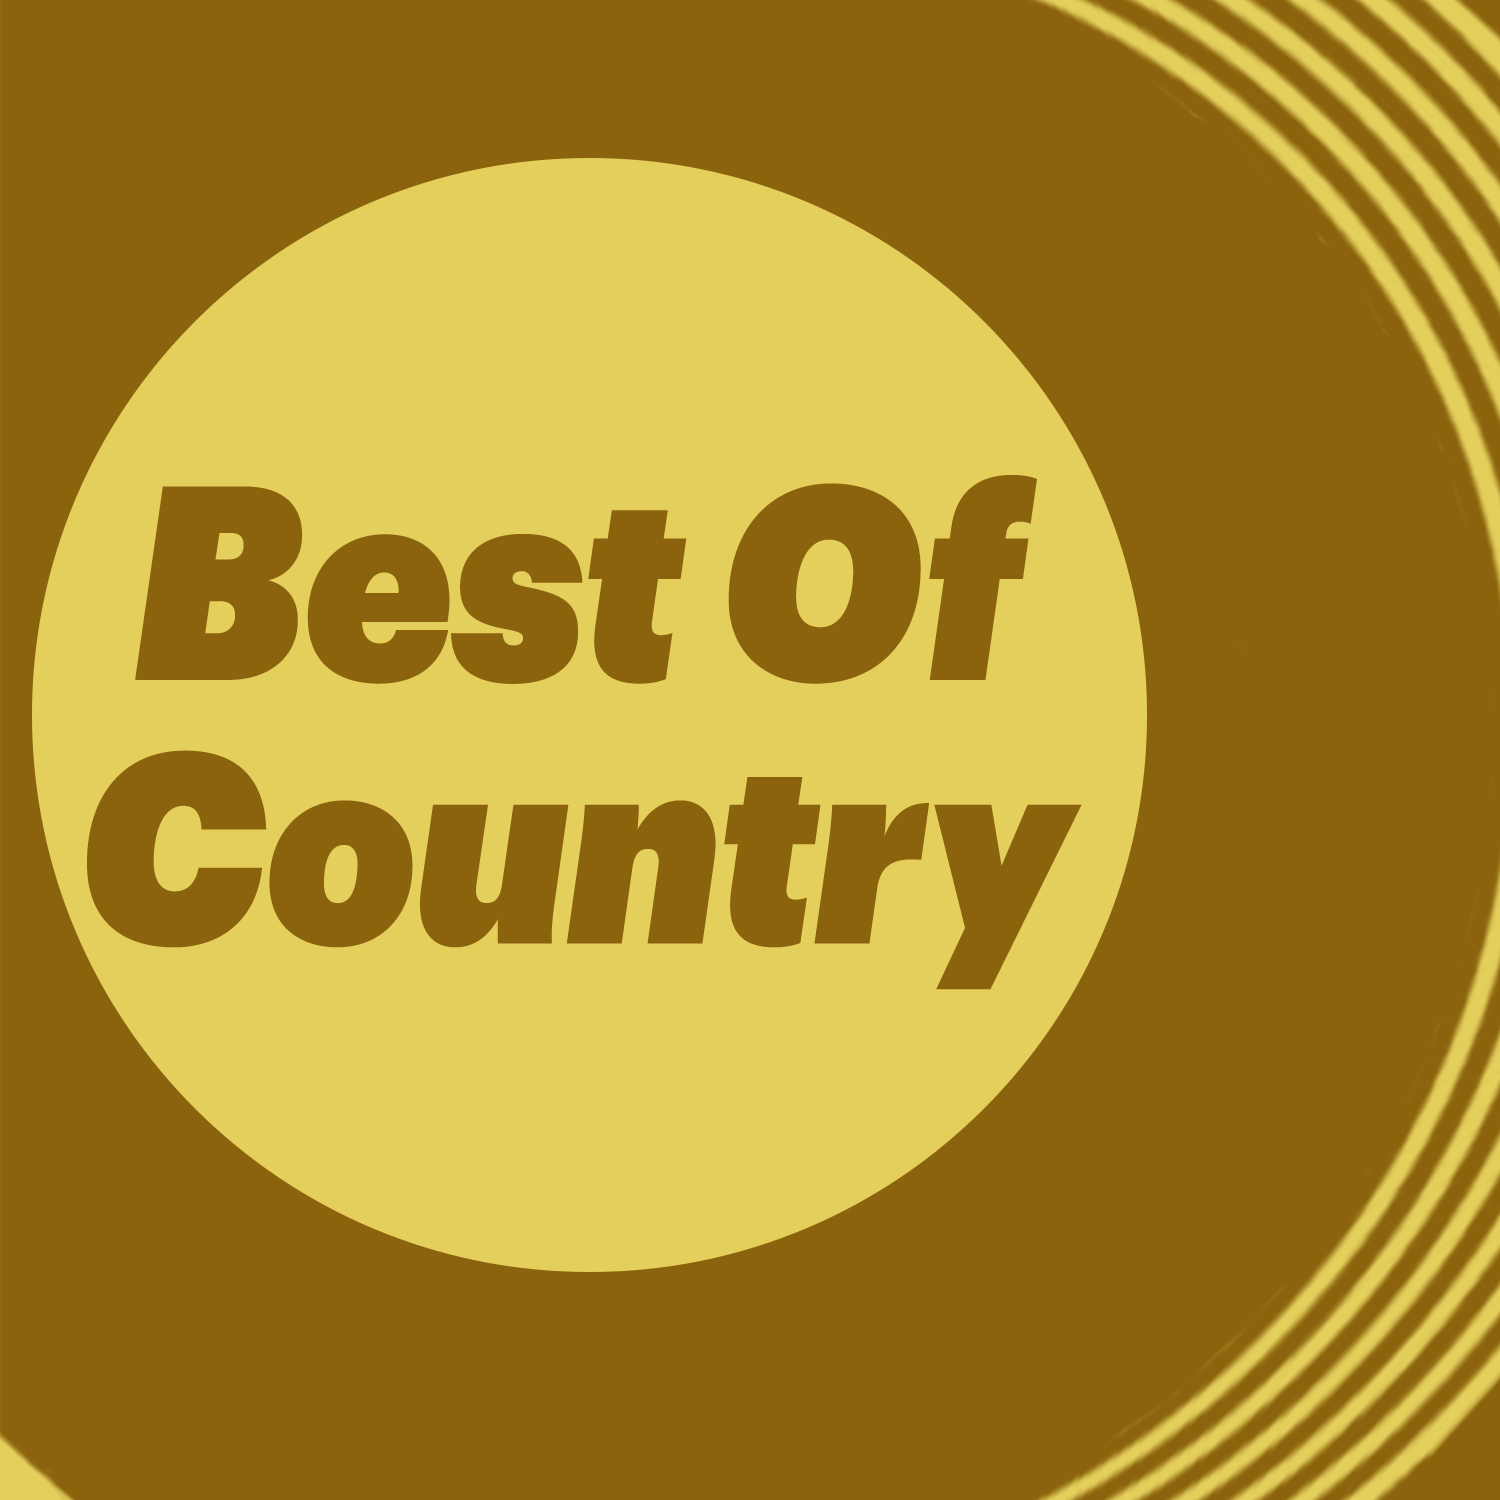 Country music- Vol 1,Songdew